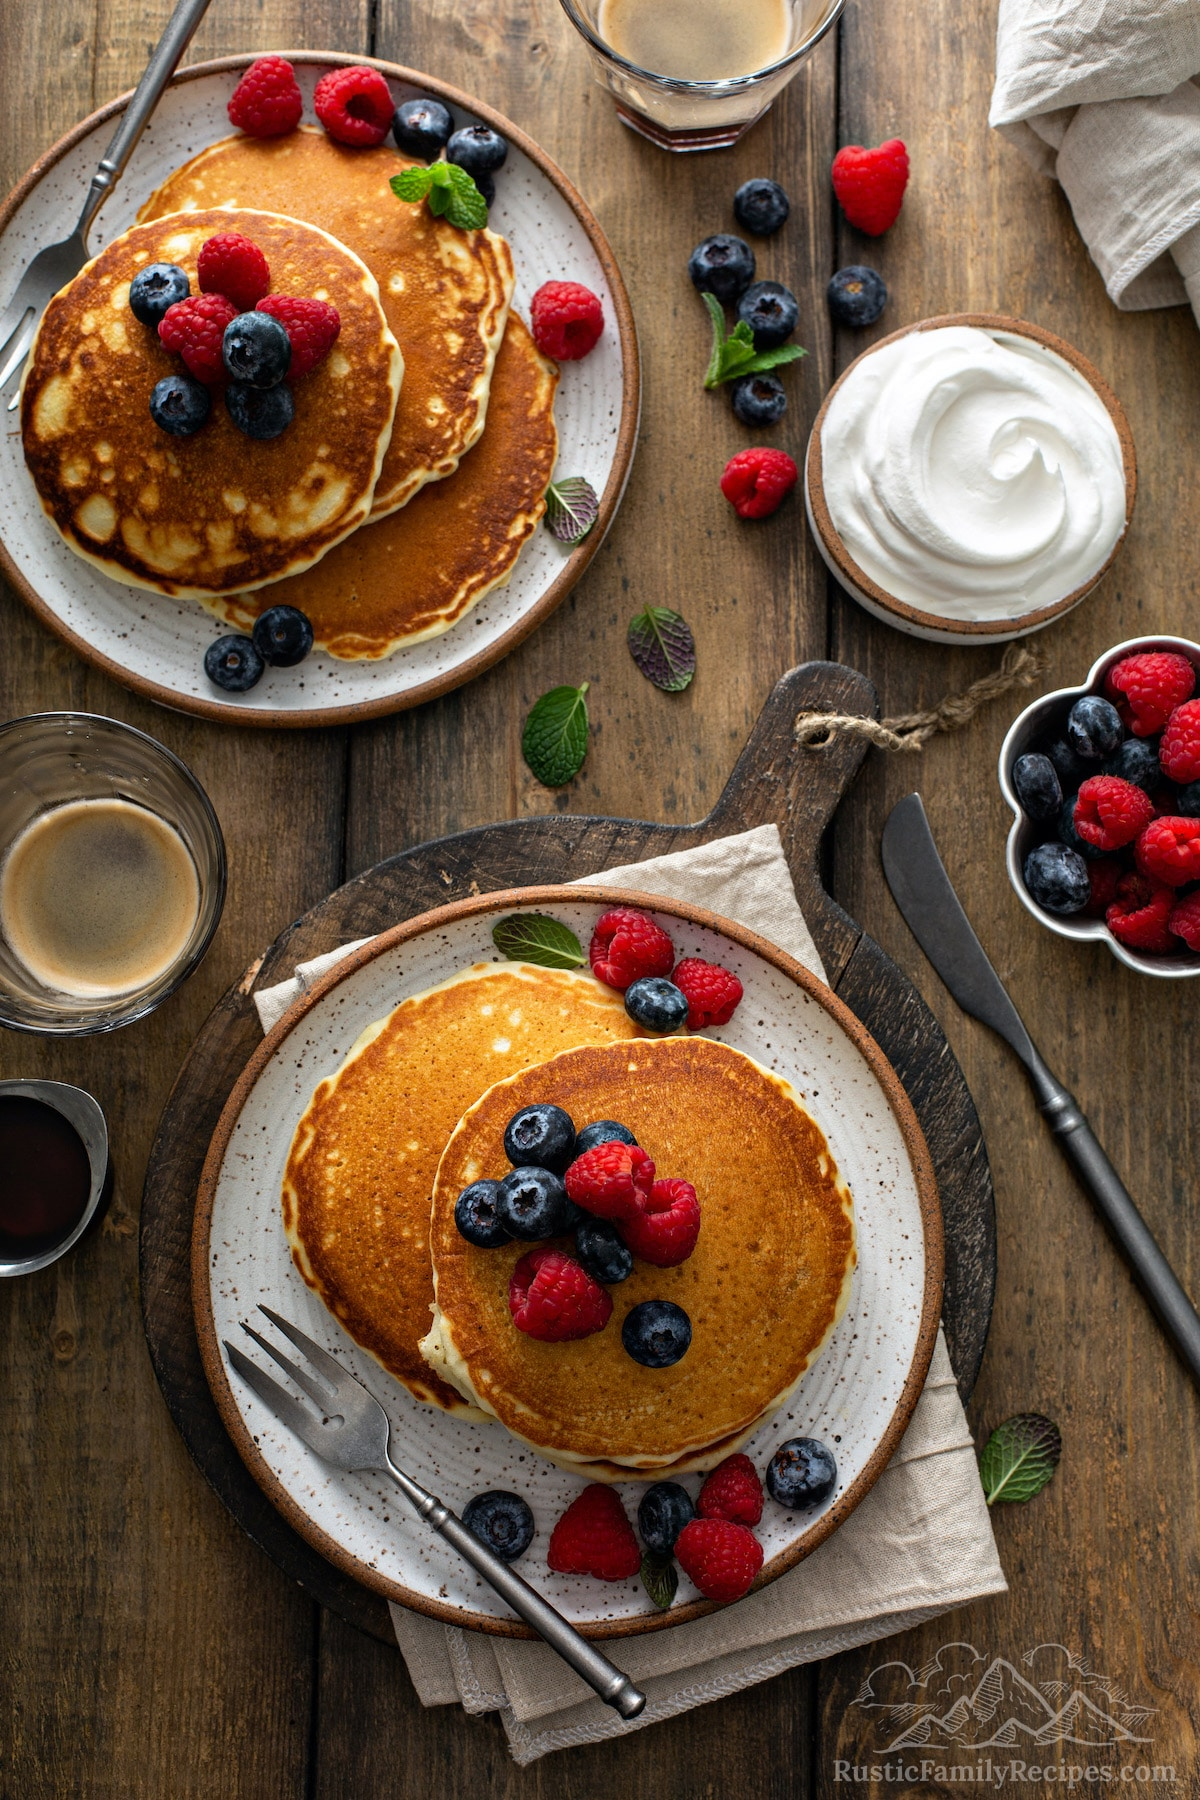 Aerial view of two plates of fluffy pancake stacks topped with berries